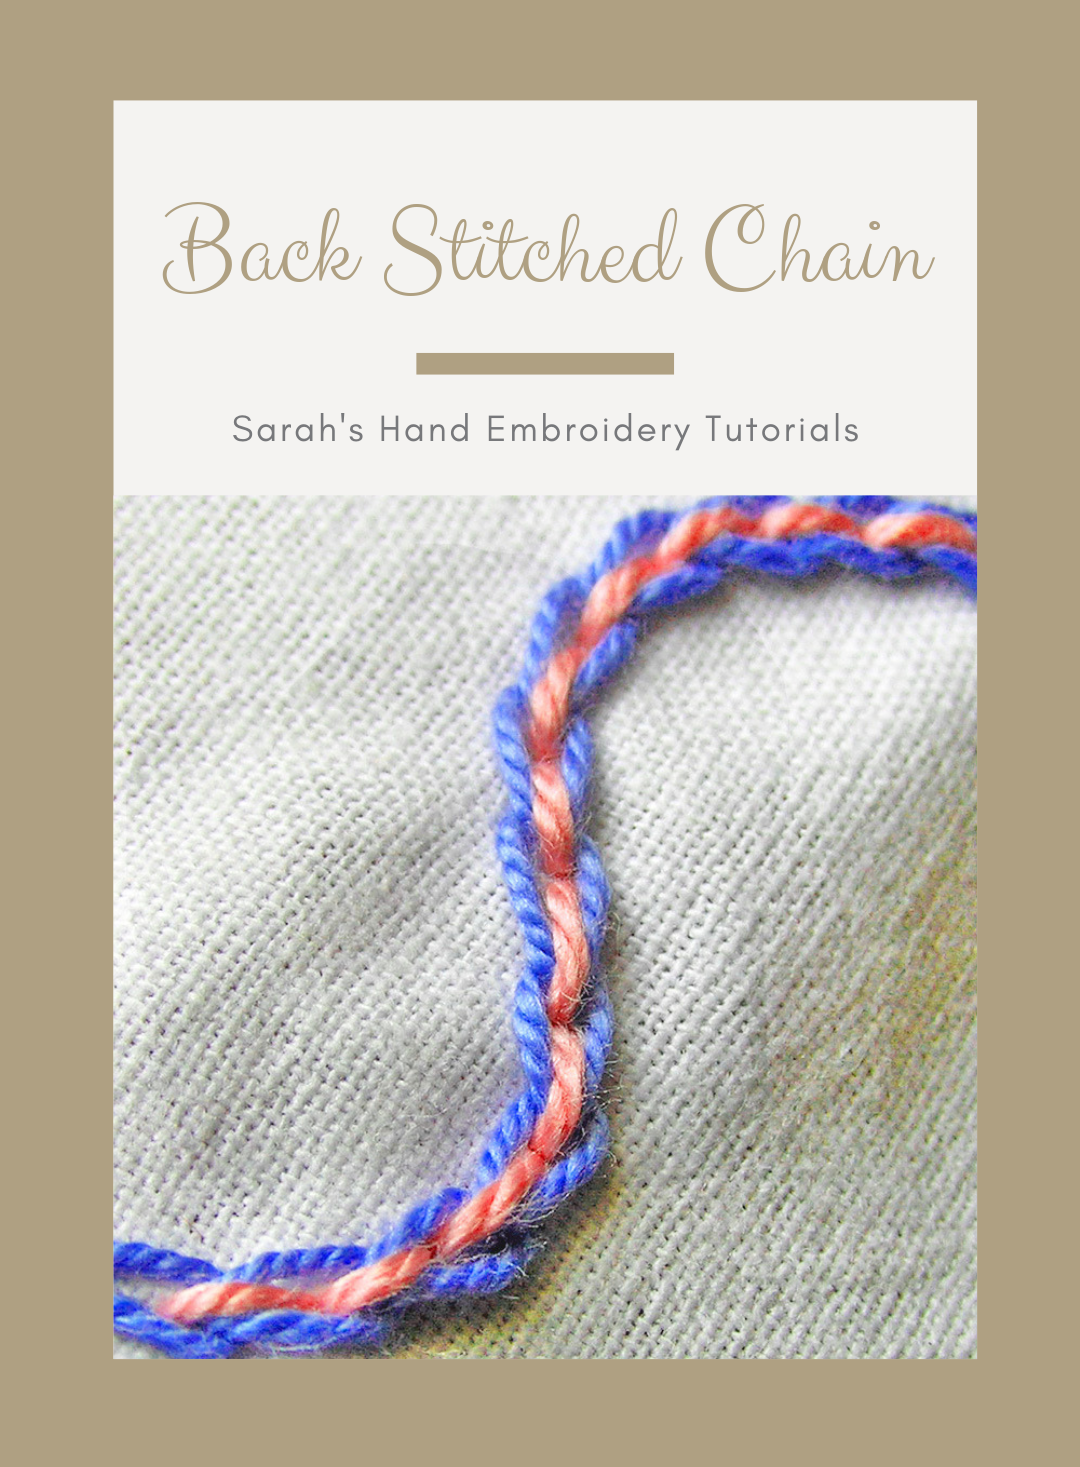 How To Do The Back Stitched Chain Stitch Sarah S Hand Embroidery Tutorials Hand Embroidery Tutorial Embroidery Tutorials Embroidery Patterns